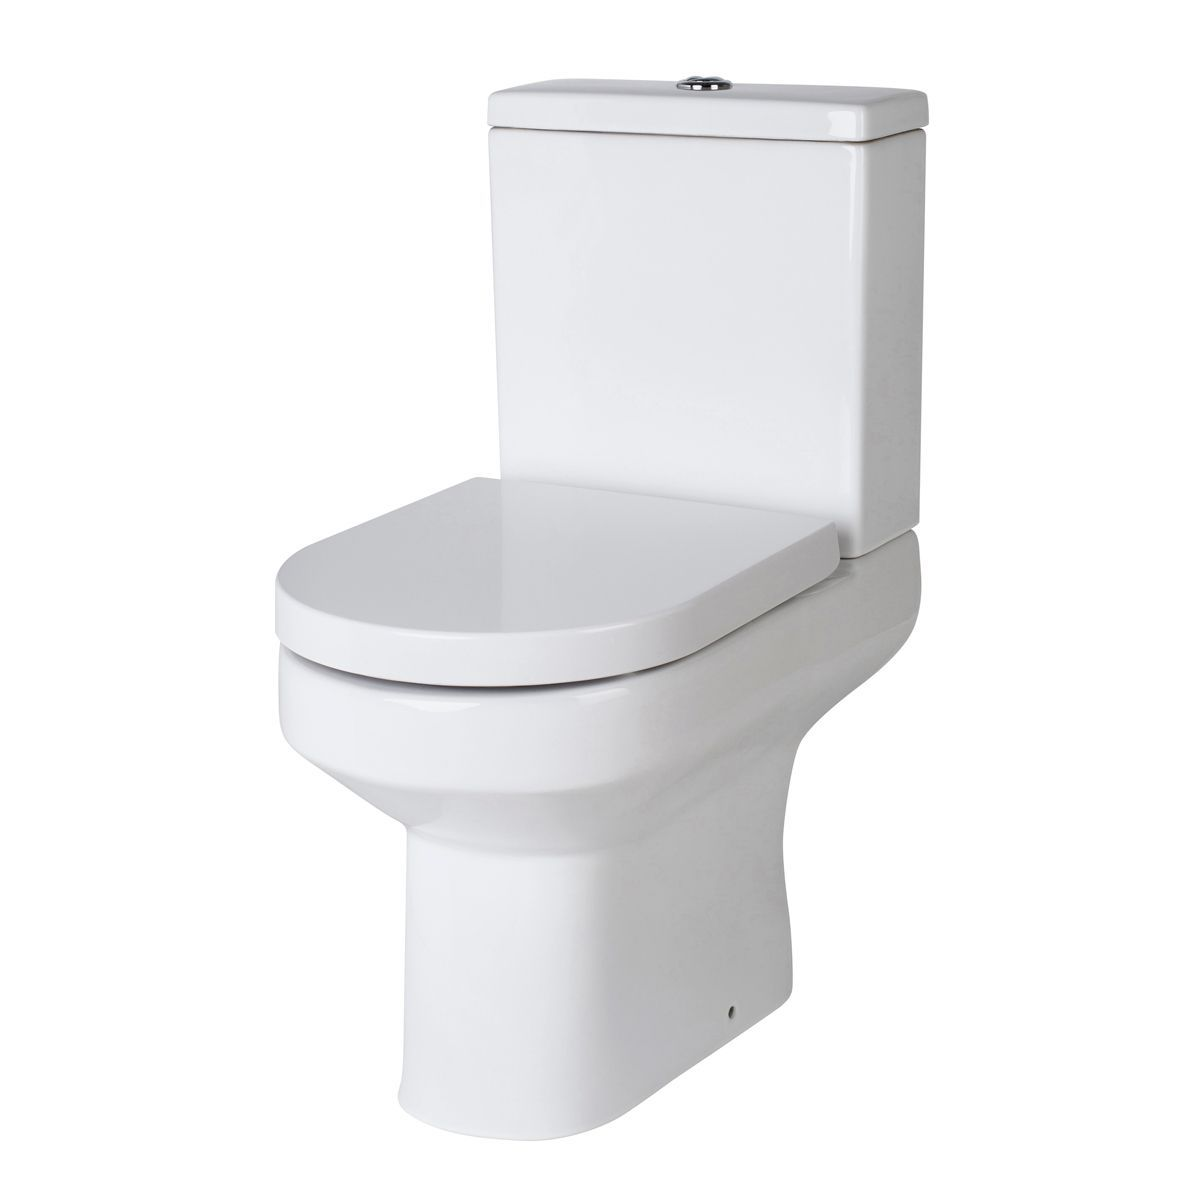 Nuie Harmony Close Coupled Toilet with Soft Close Seat